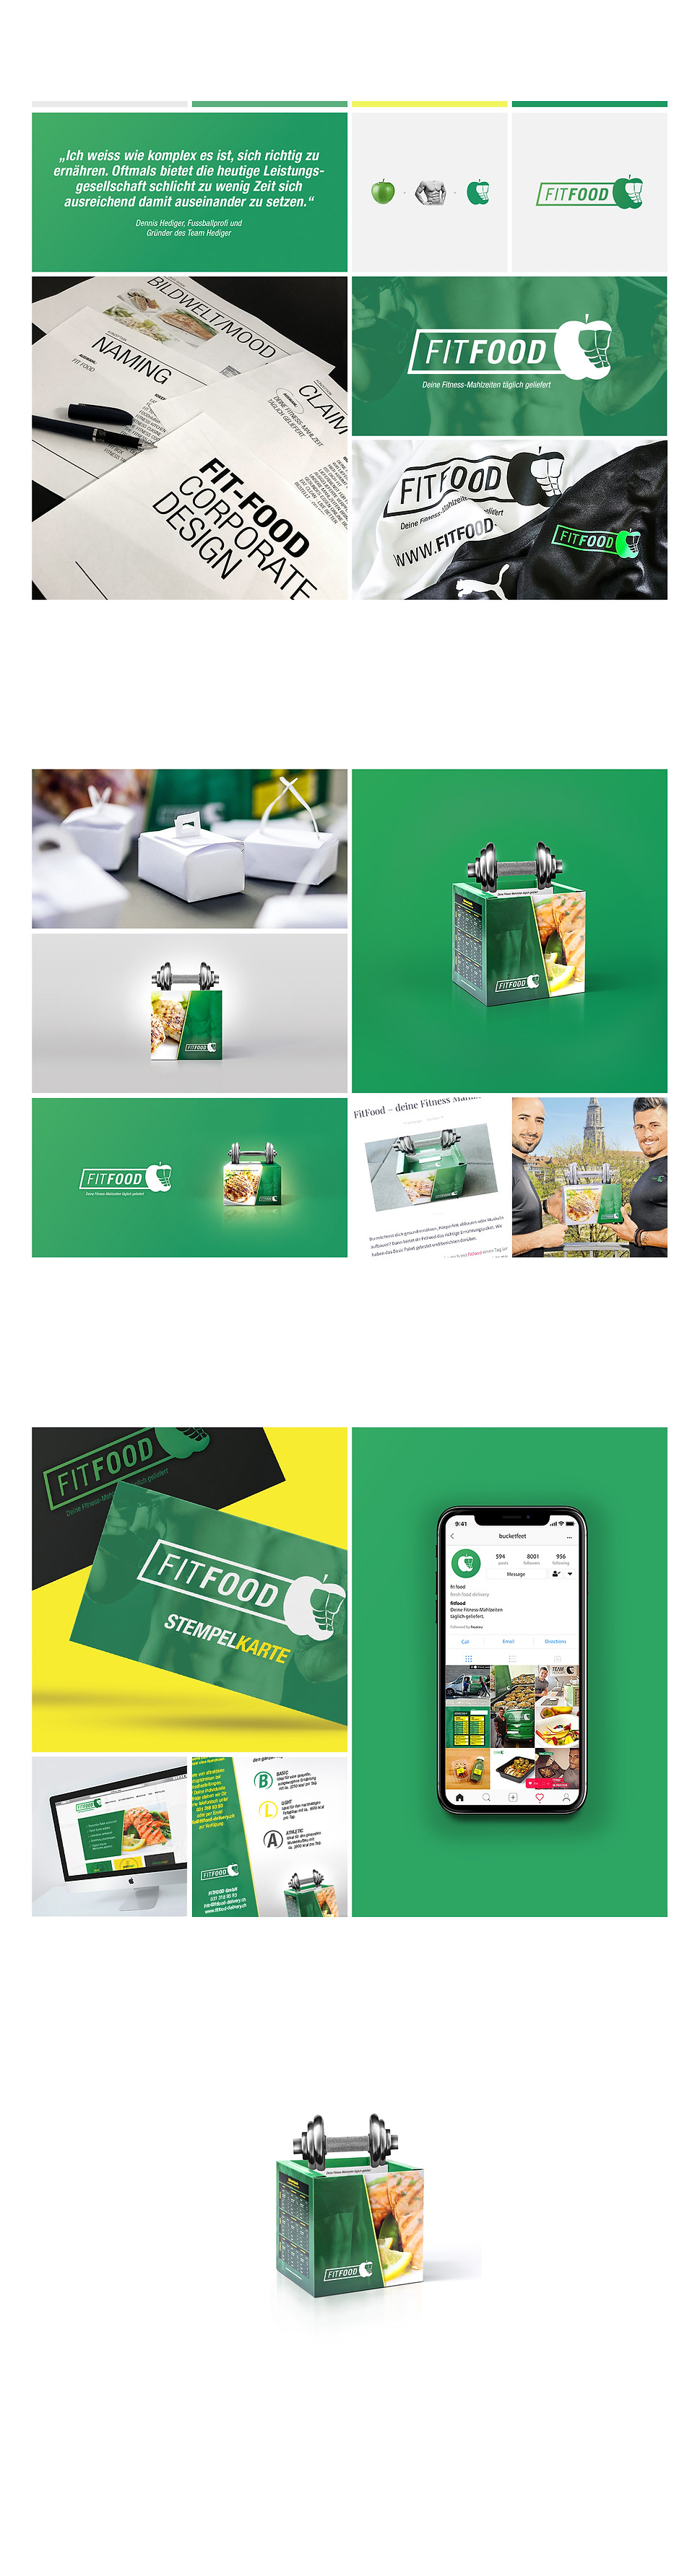 fitfood-branding-logo-corporate-verpacku